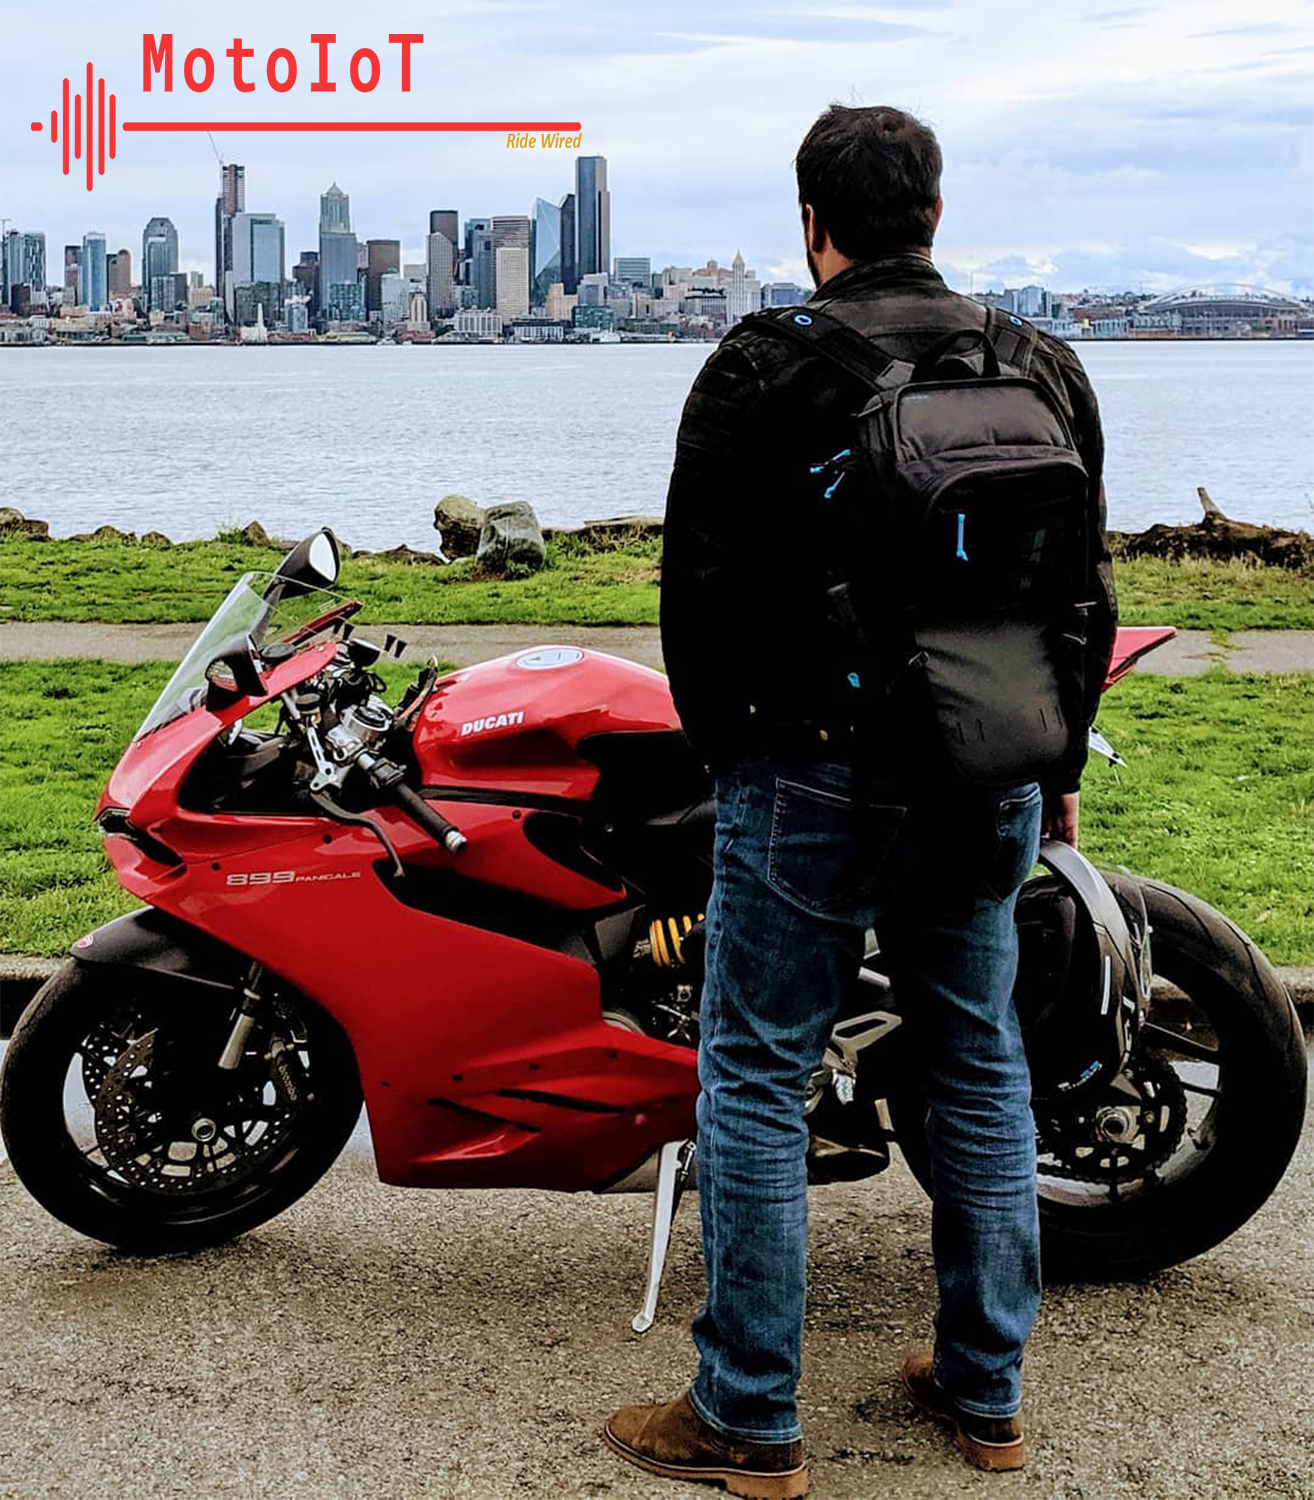 What is motoiot? - It is an idea that was born due to our passion of motorcycle and technology. It is to explore ways to combine the two together and make our riding experience safer and better.